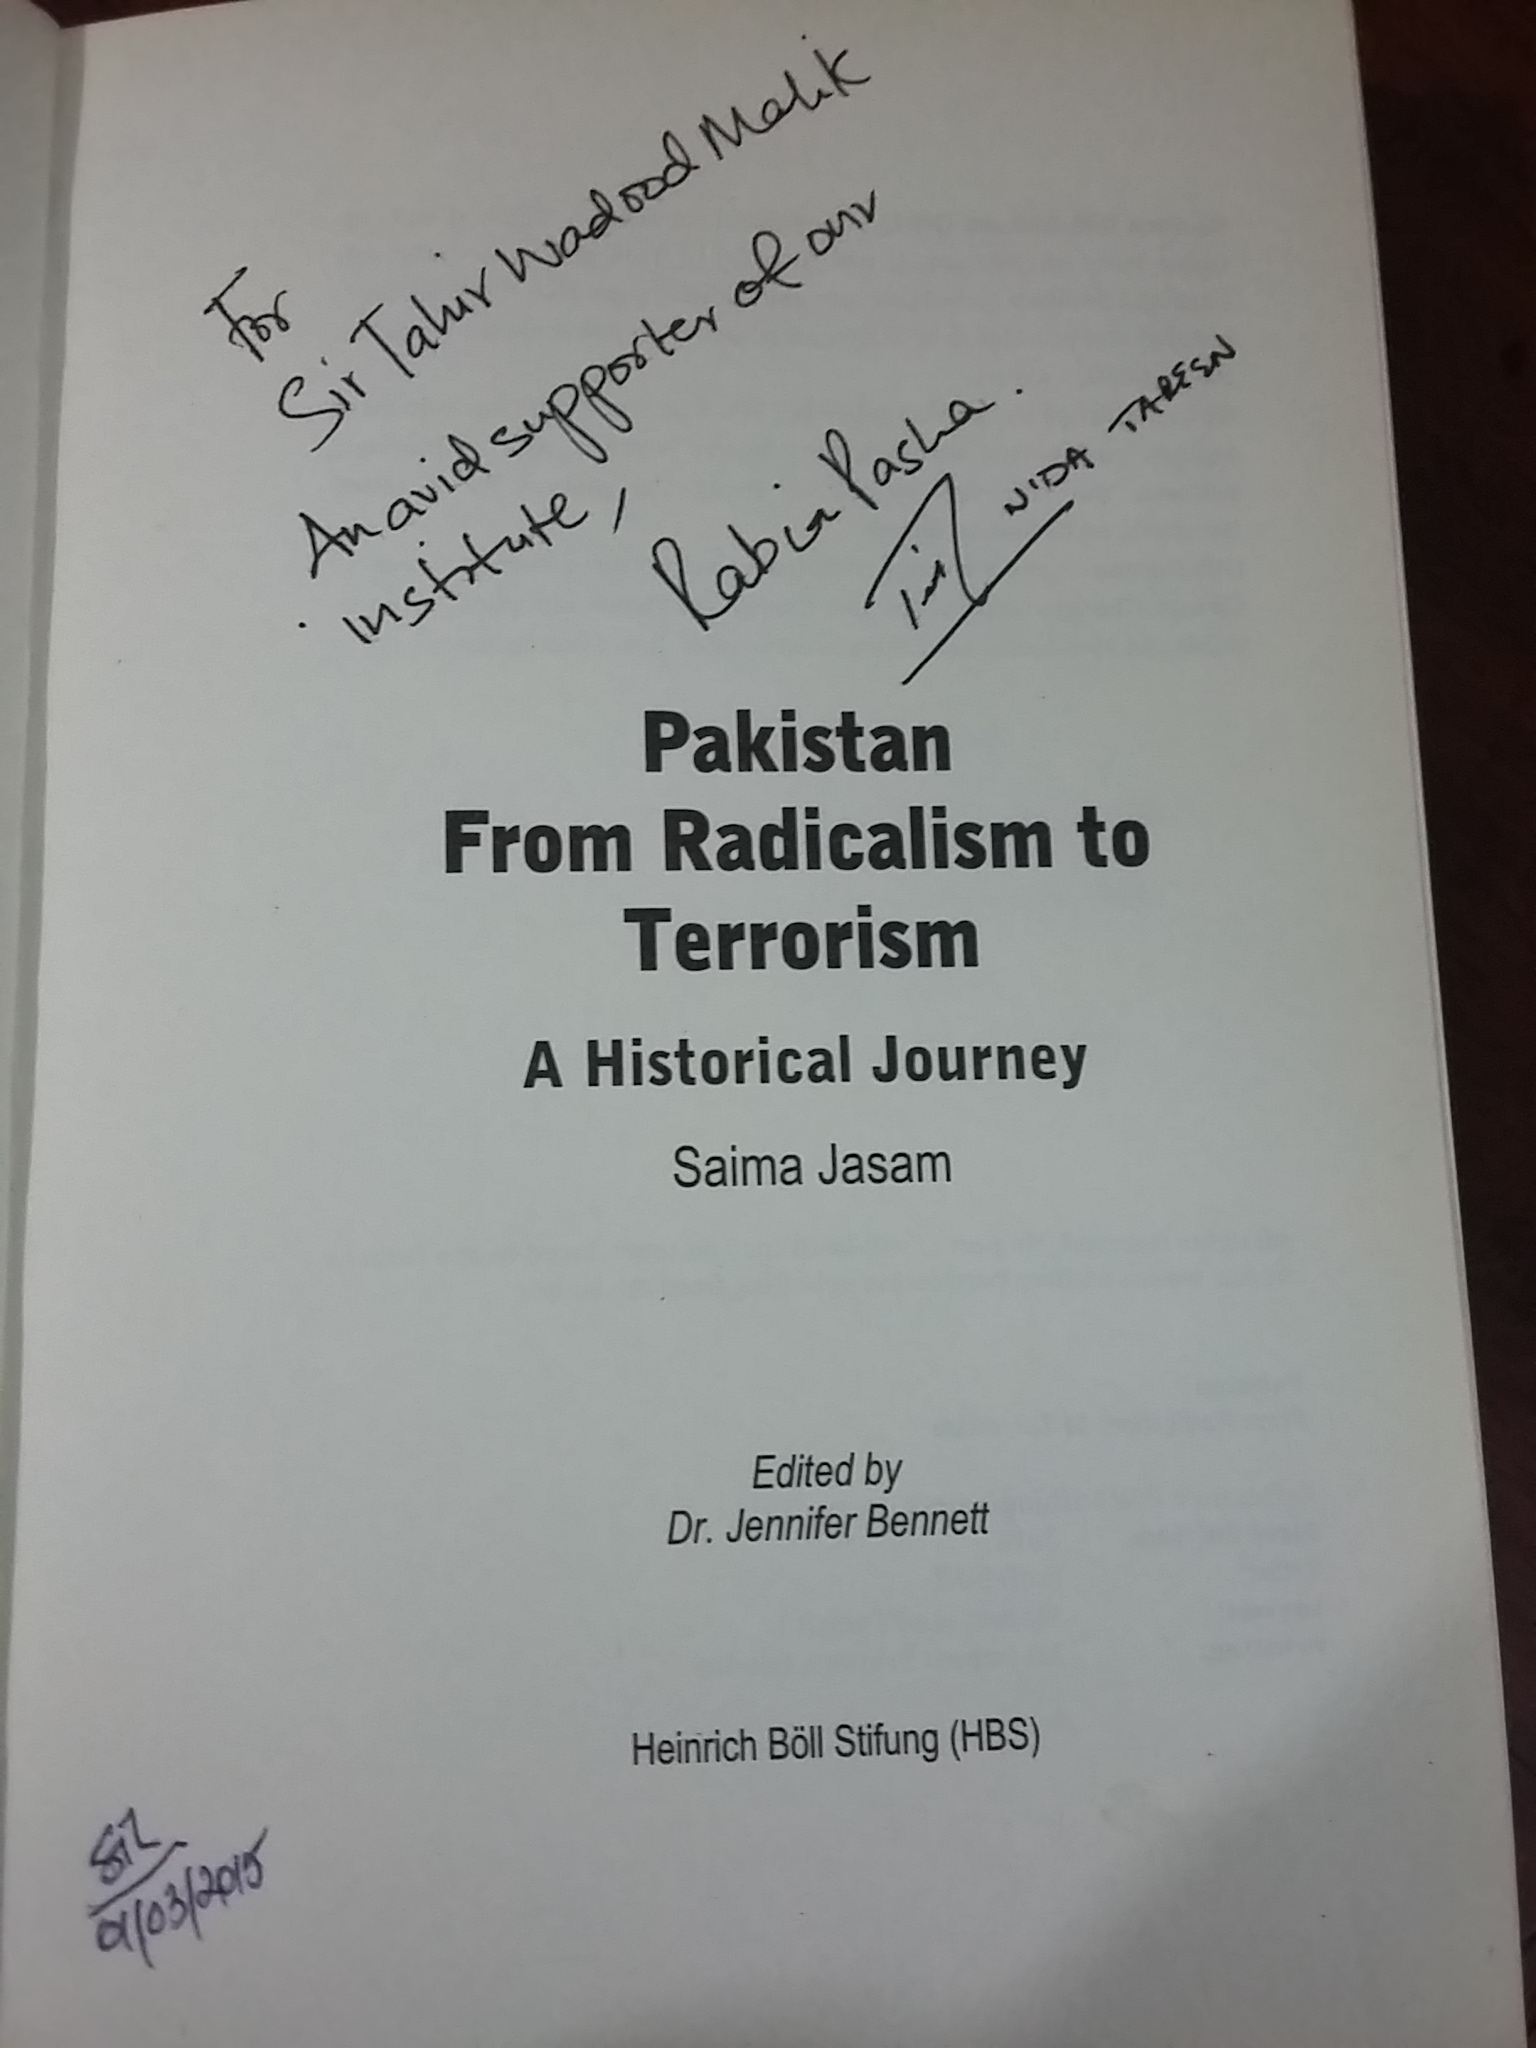 book inscription